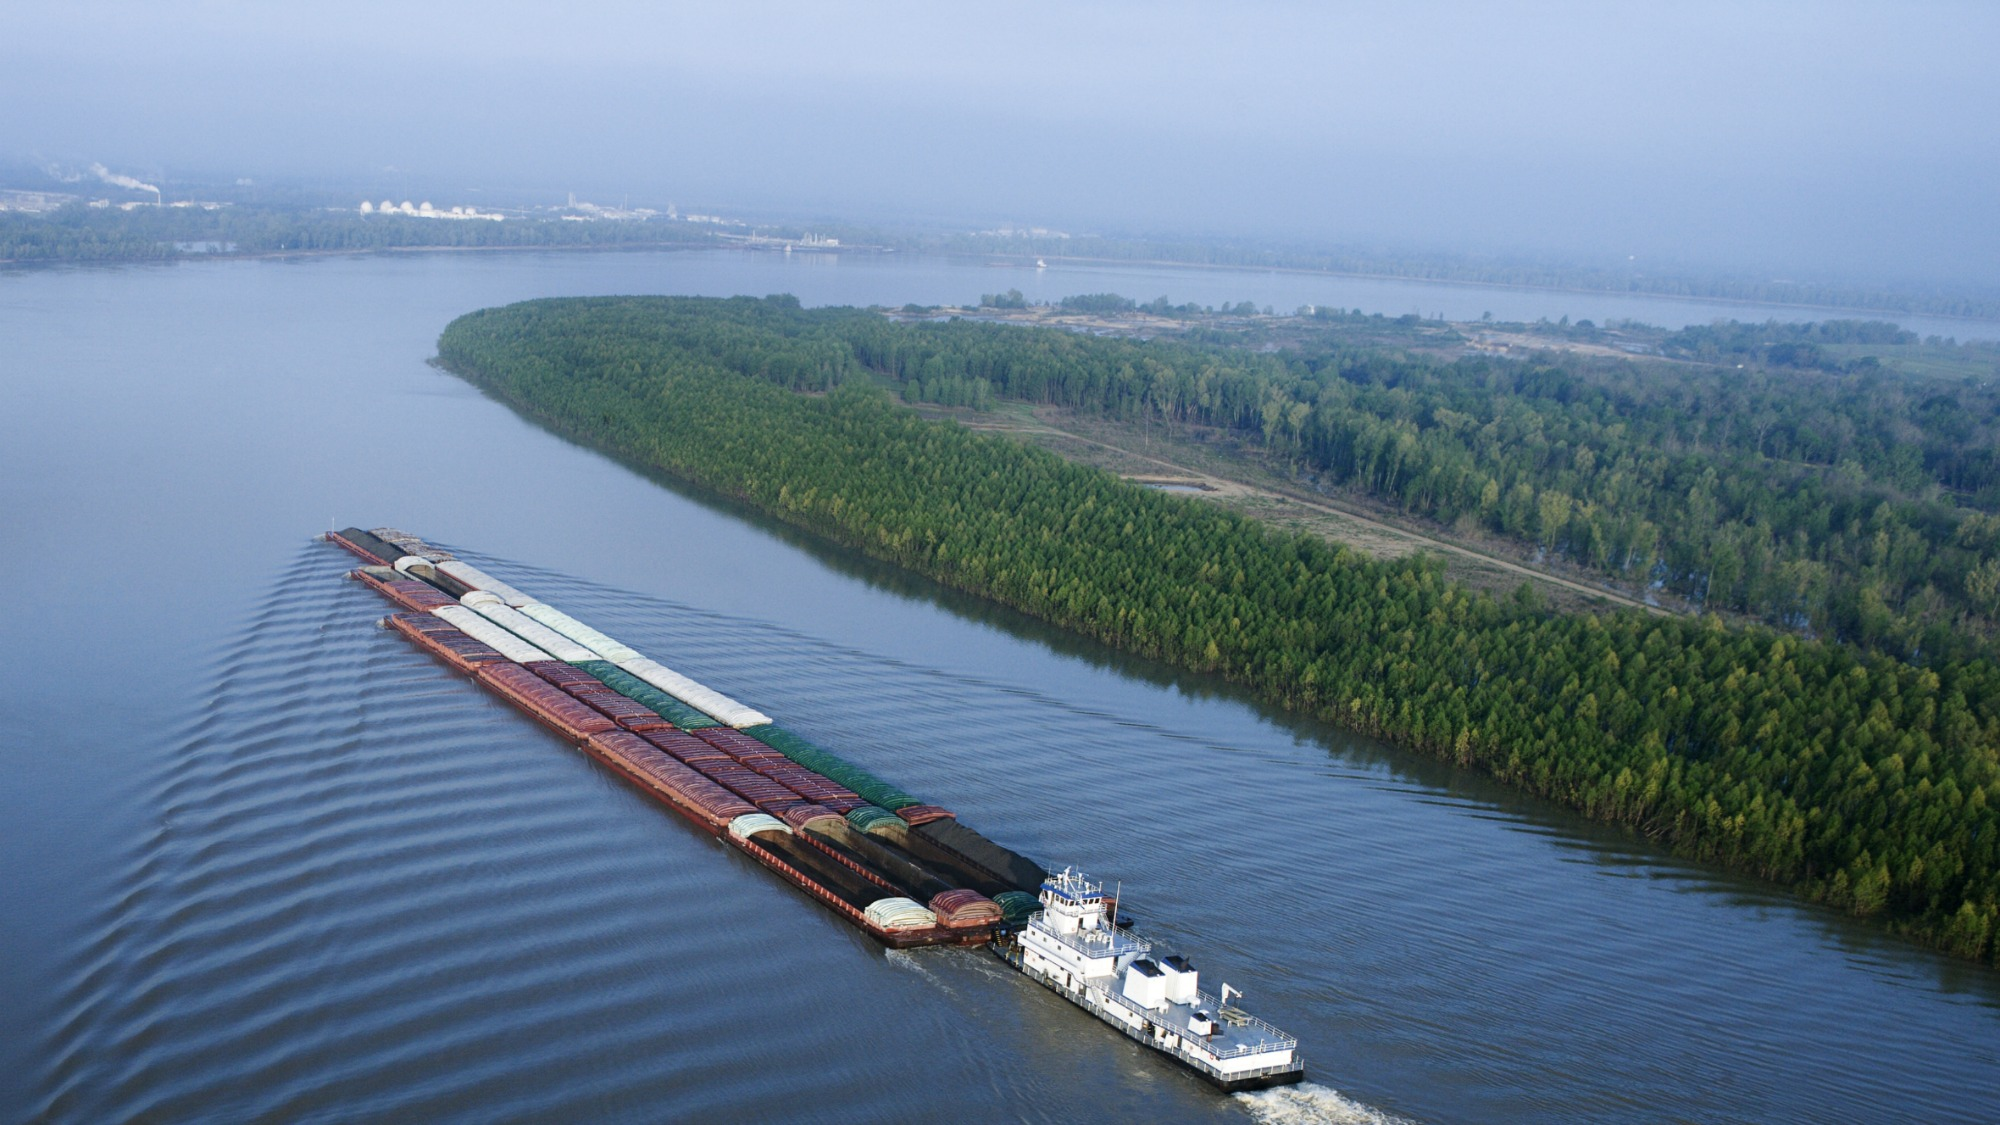 A barge on the Mississippi River